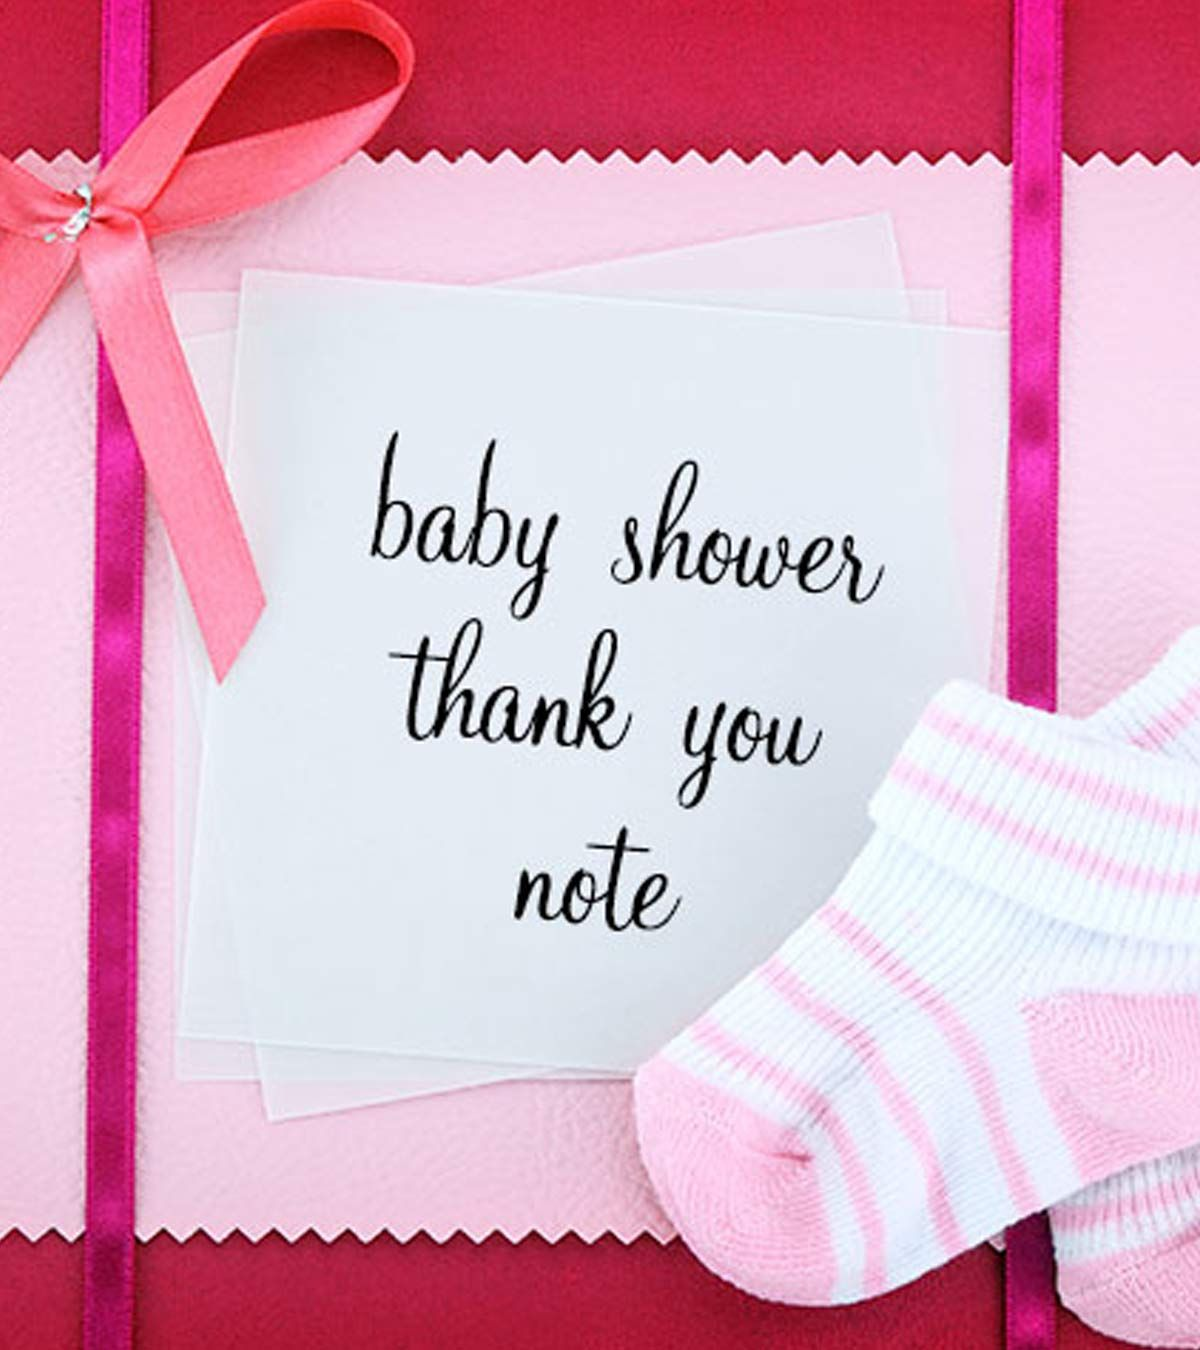 Baby shower thank you notes what to write in a thank you